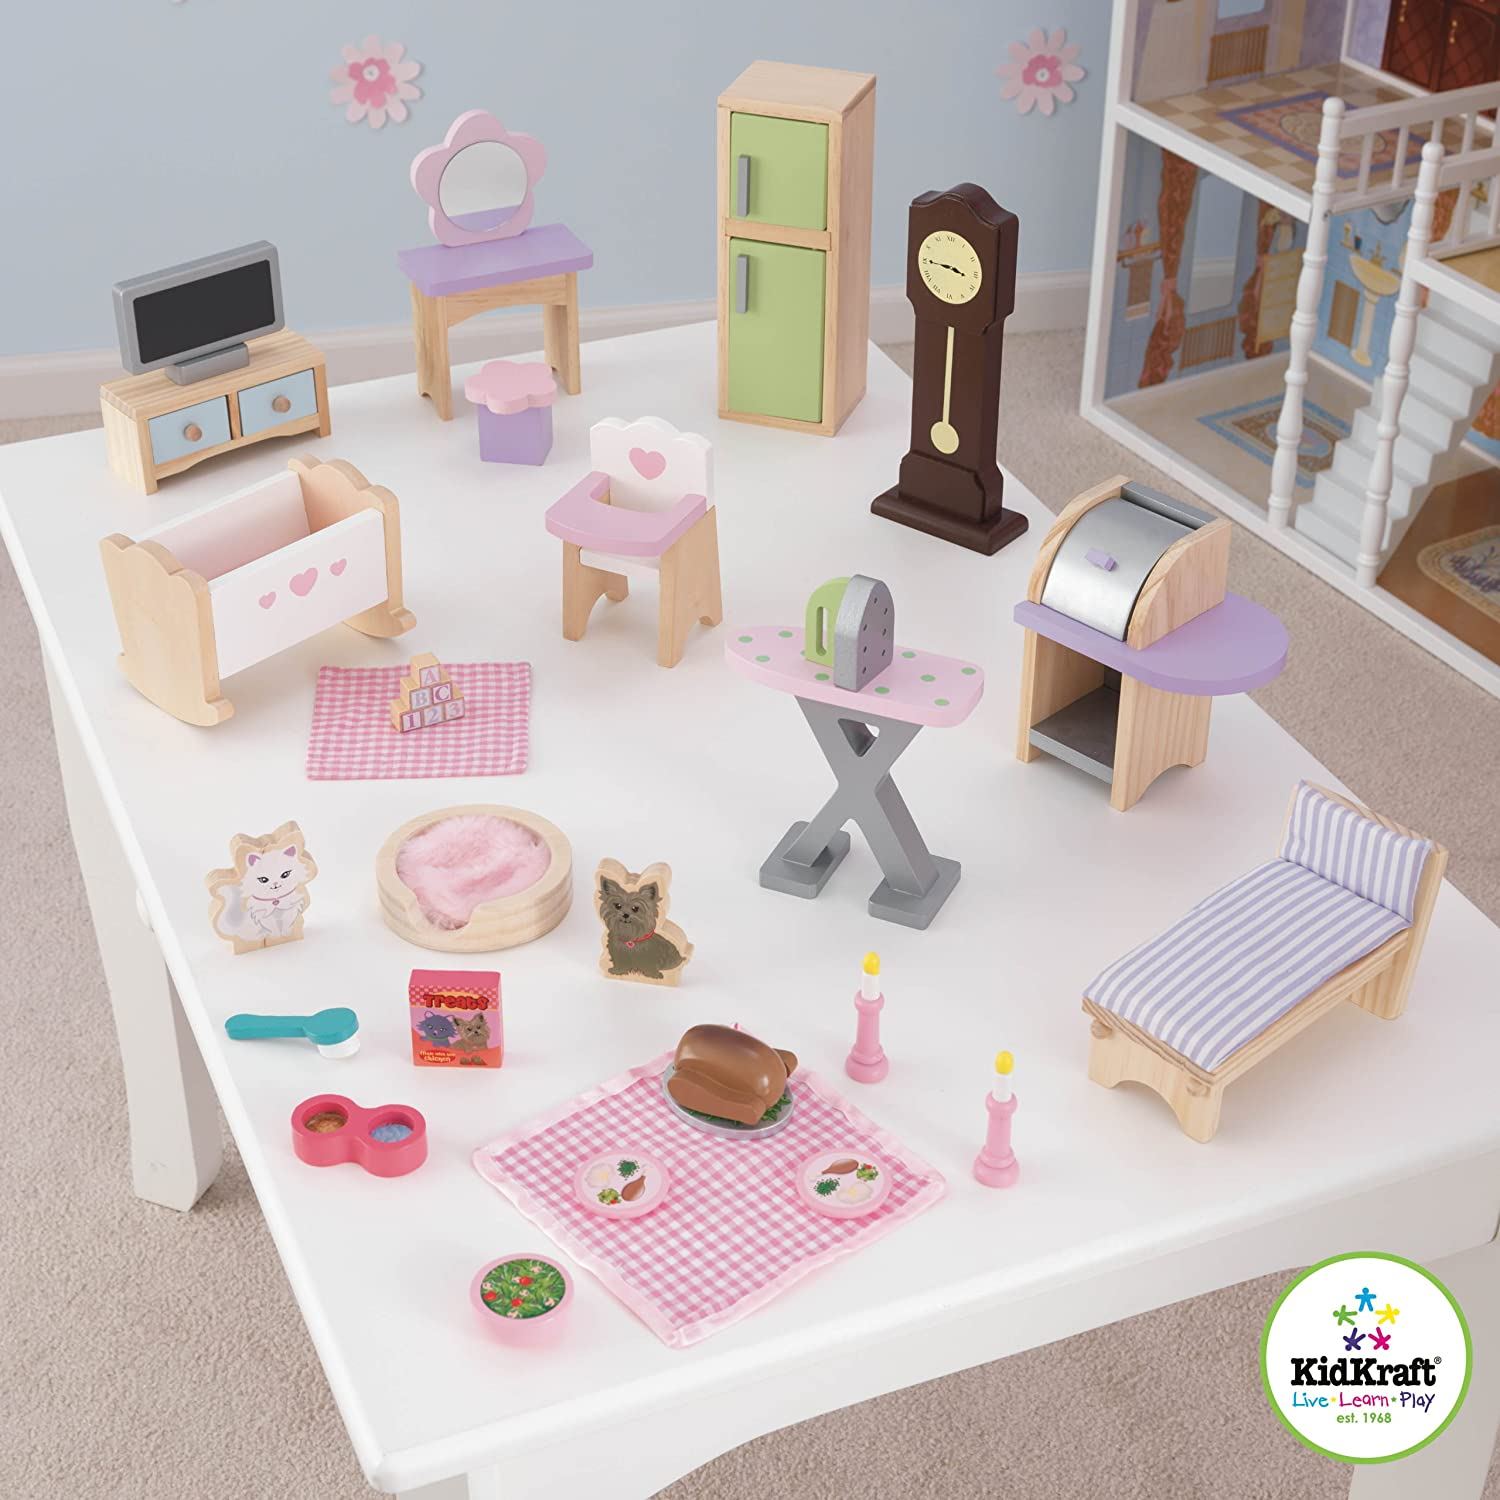 Captivating KidKraft Doll House Furniture Set (28 Pieces): KidKraft: Amazon.co.uk: Toys  U0026 Games